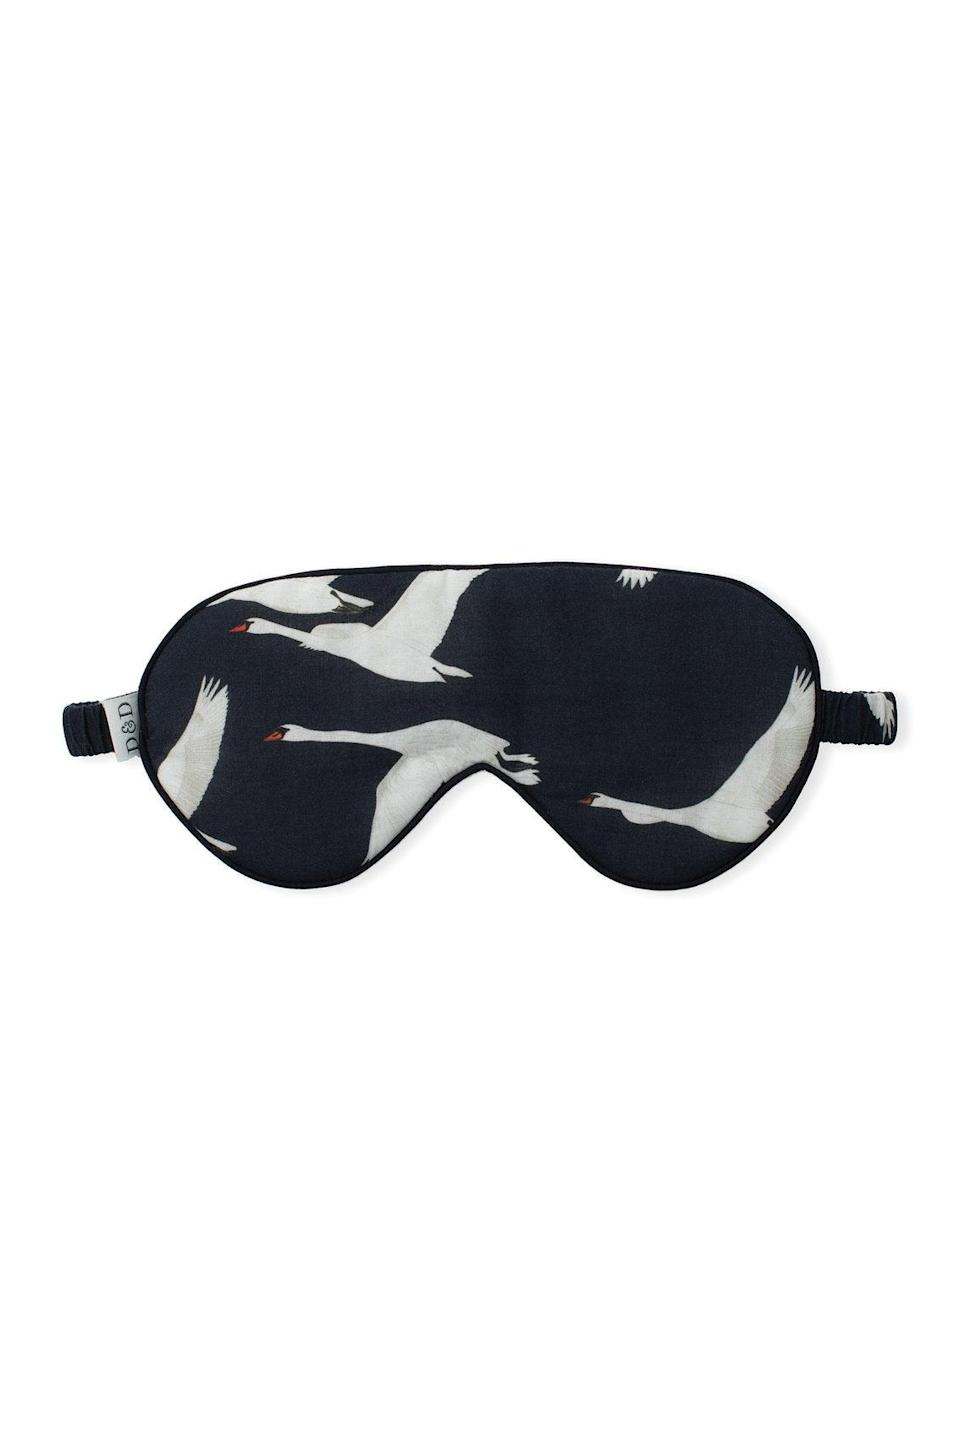 "<h3><a href=""https://desmondanddempsey.com/collections/womens-eye-masks/products/cotton-luxe-eye-mask-cygnus-swan-print-black-women"" rel=""nofollow noopener"" target=""_blank"" data-ylk=""slk:Desmond & Dempsey The Cygnus Swan Eye Mask"" class=""link rapid-noclick-resp"">Desmond & Dempsey The Cygnus Swan Eye Mask<br></a></h3><br>Who wouldn't appreciate the gift of a good — and chic! — night's sleep?<br><br><strong>Desmond & Dempsey</strong> The Cygnus Swan Print Eye Mask, $, available at <a href=""https://go.skimresources.com/?id=30283X879131&url=https%3A%2F%2Fdesmondanddempsey.com%2Fcollections%2Fwomens-eye-masks%2Fproducts%2Fcotton-luxe-eye-mask-cygnus-swan-print-black-women"" rel=""nofollow noopener"" target=""_blank"" data-ylk=""slk:Desmond & Dempsey"" class=""link rapid-noclick-resp"">Desmond & Dempsey</a>"